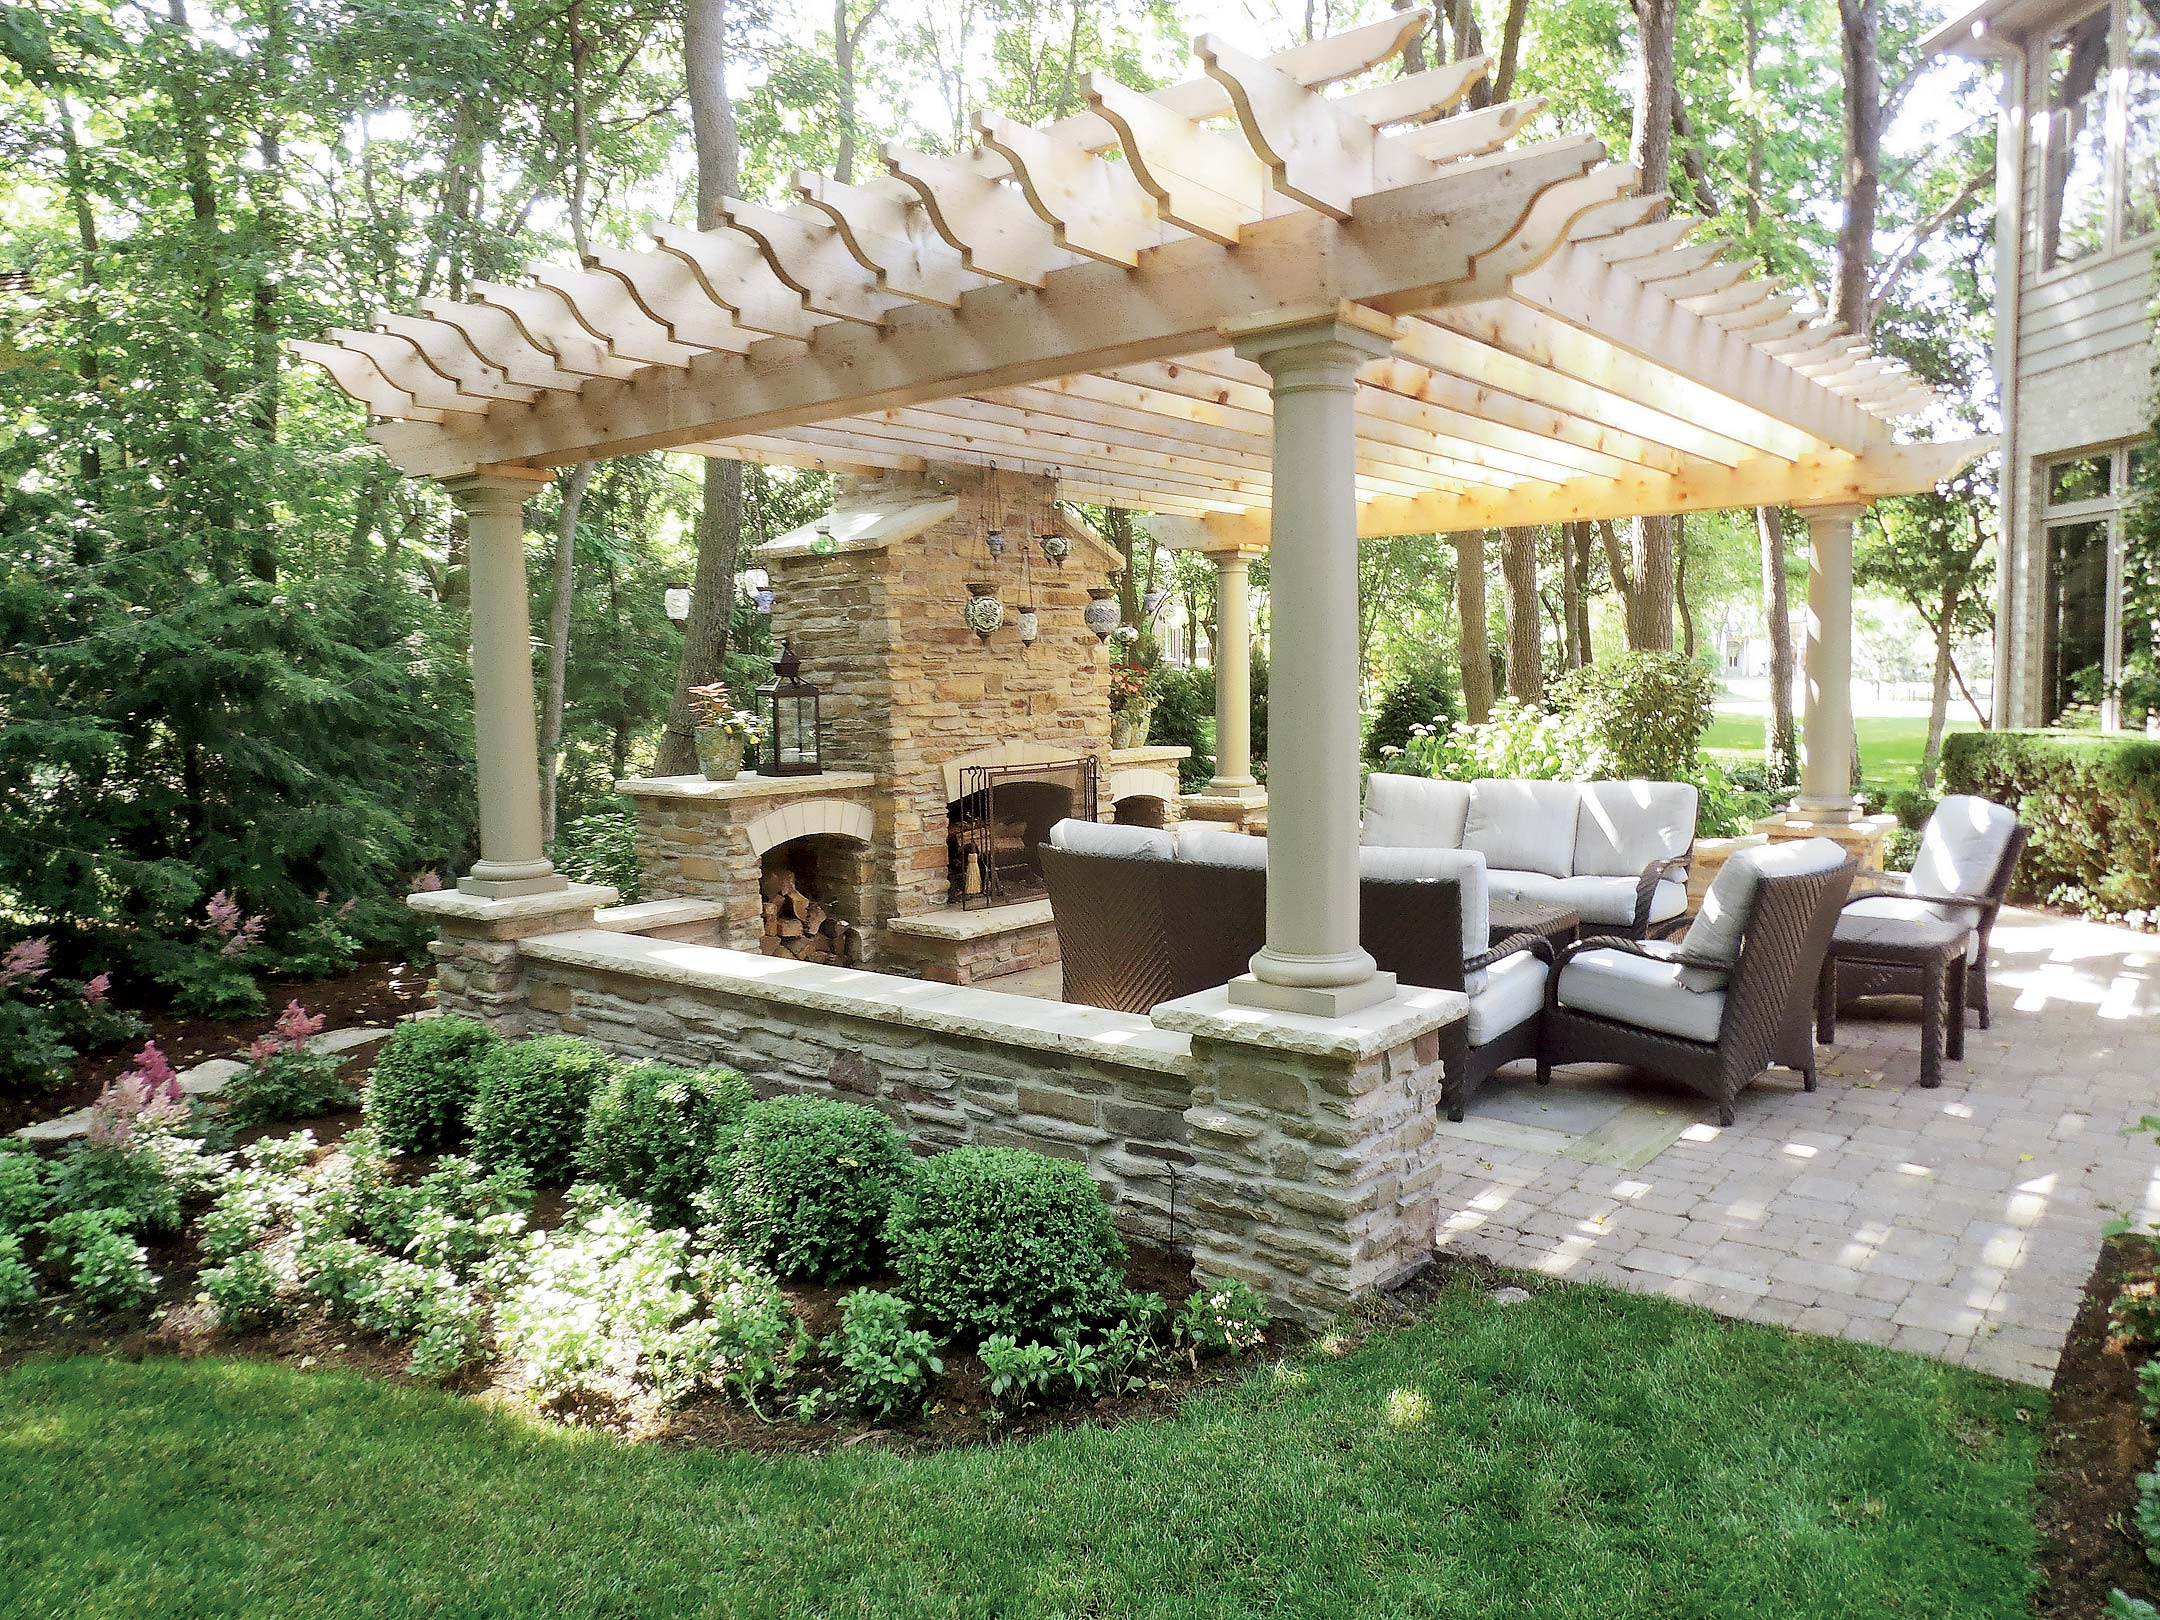 Backyard structures for entertaining for Yard designer